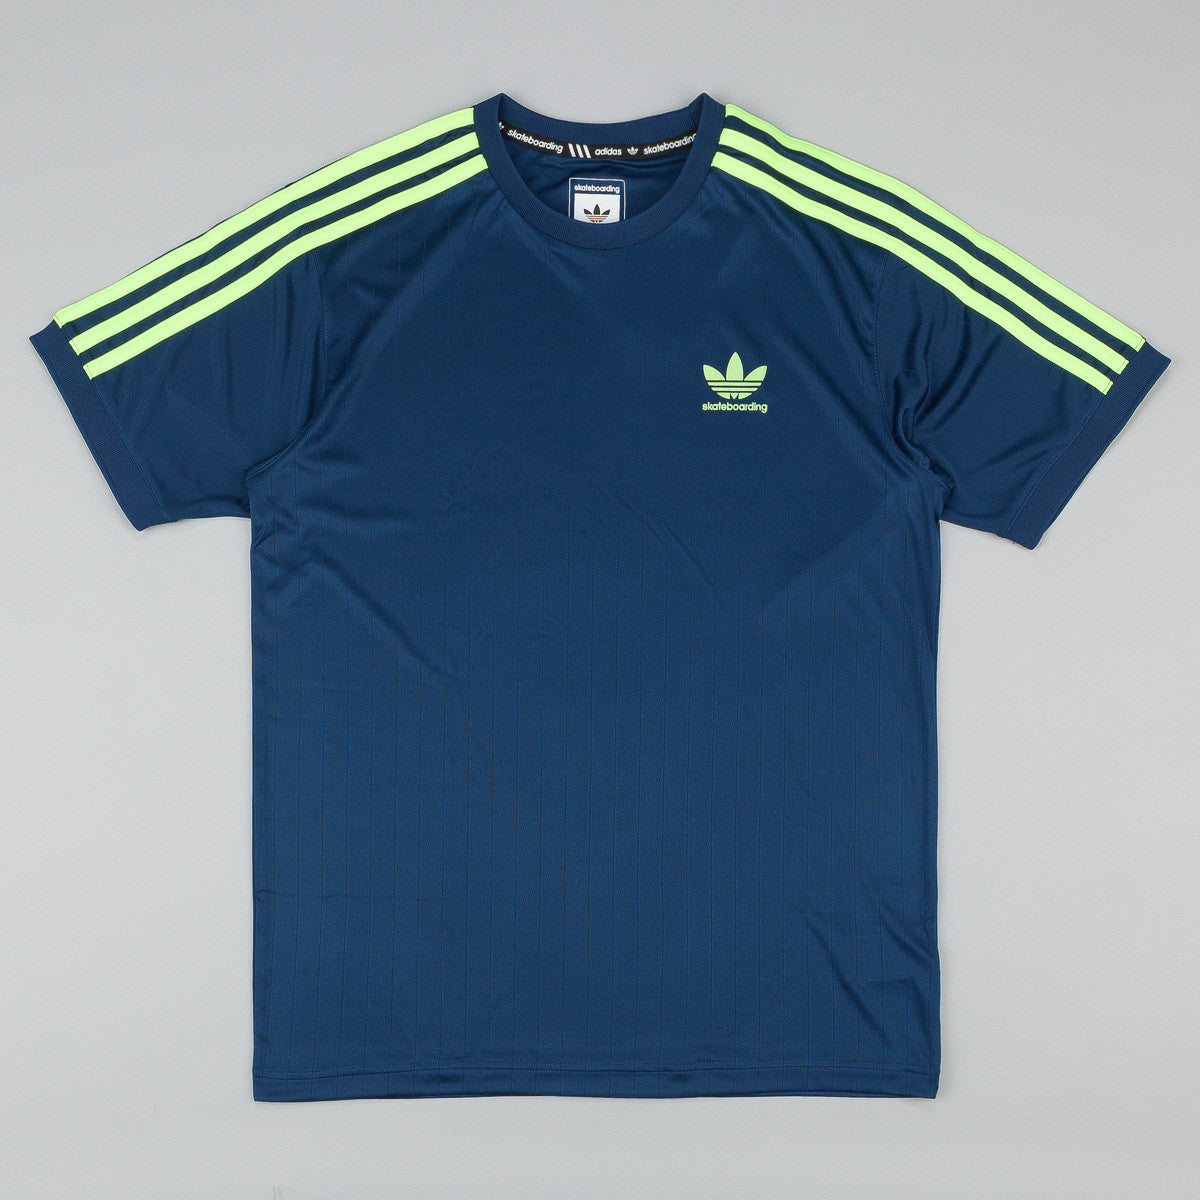 Adidas ADV Club Jersey - Oxford Blue / Yellow